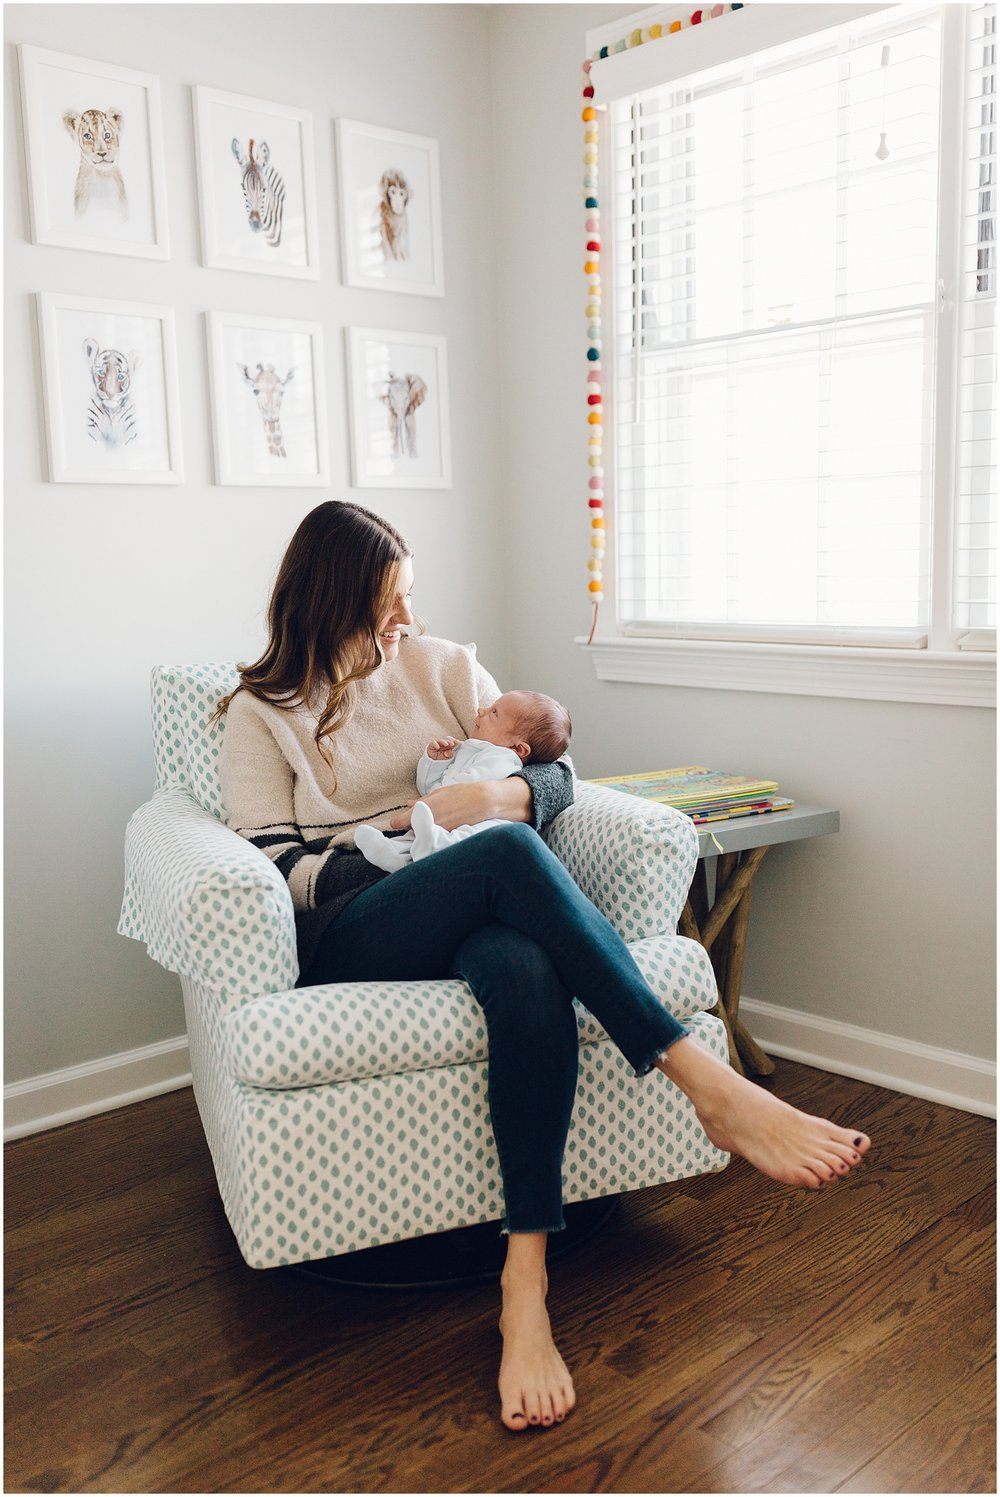 Mother Sitting In Rocking Chair With Newborn Son In Nursery